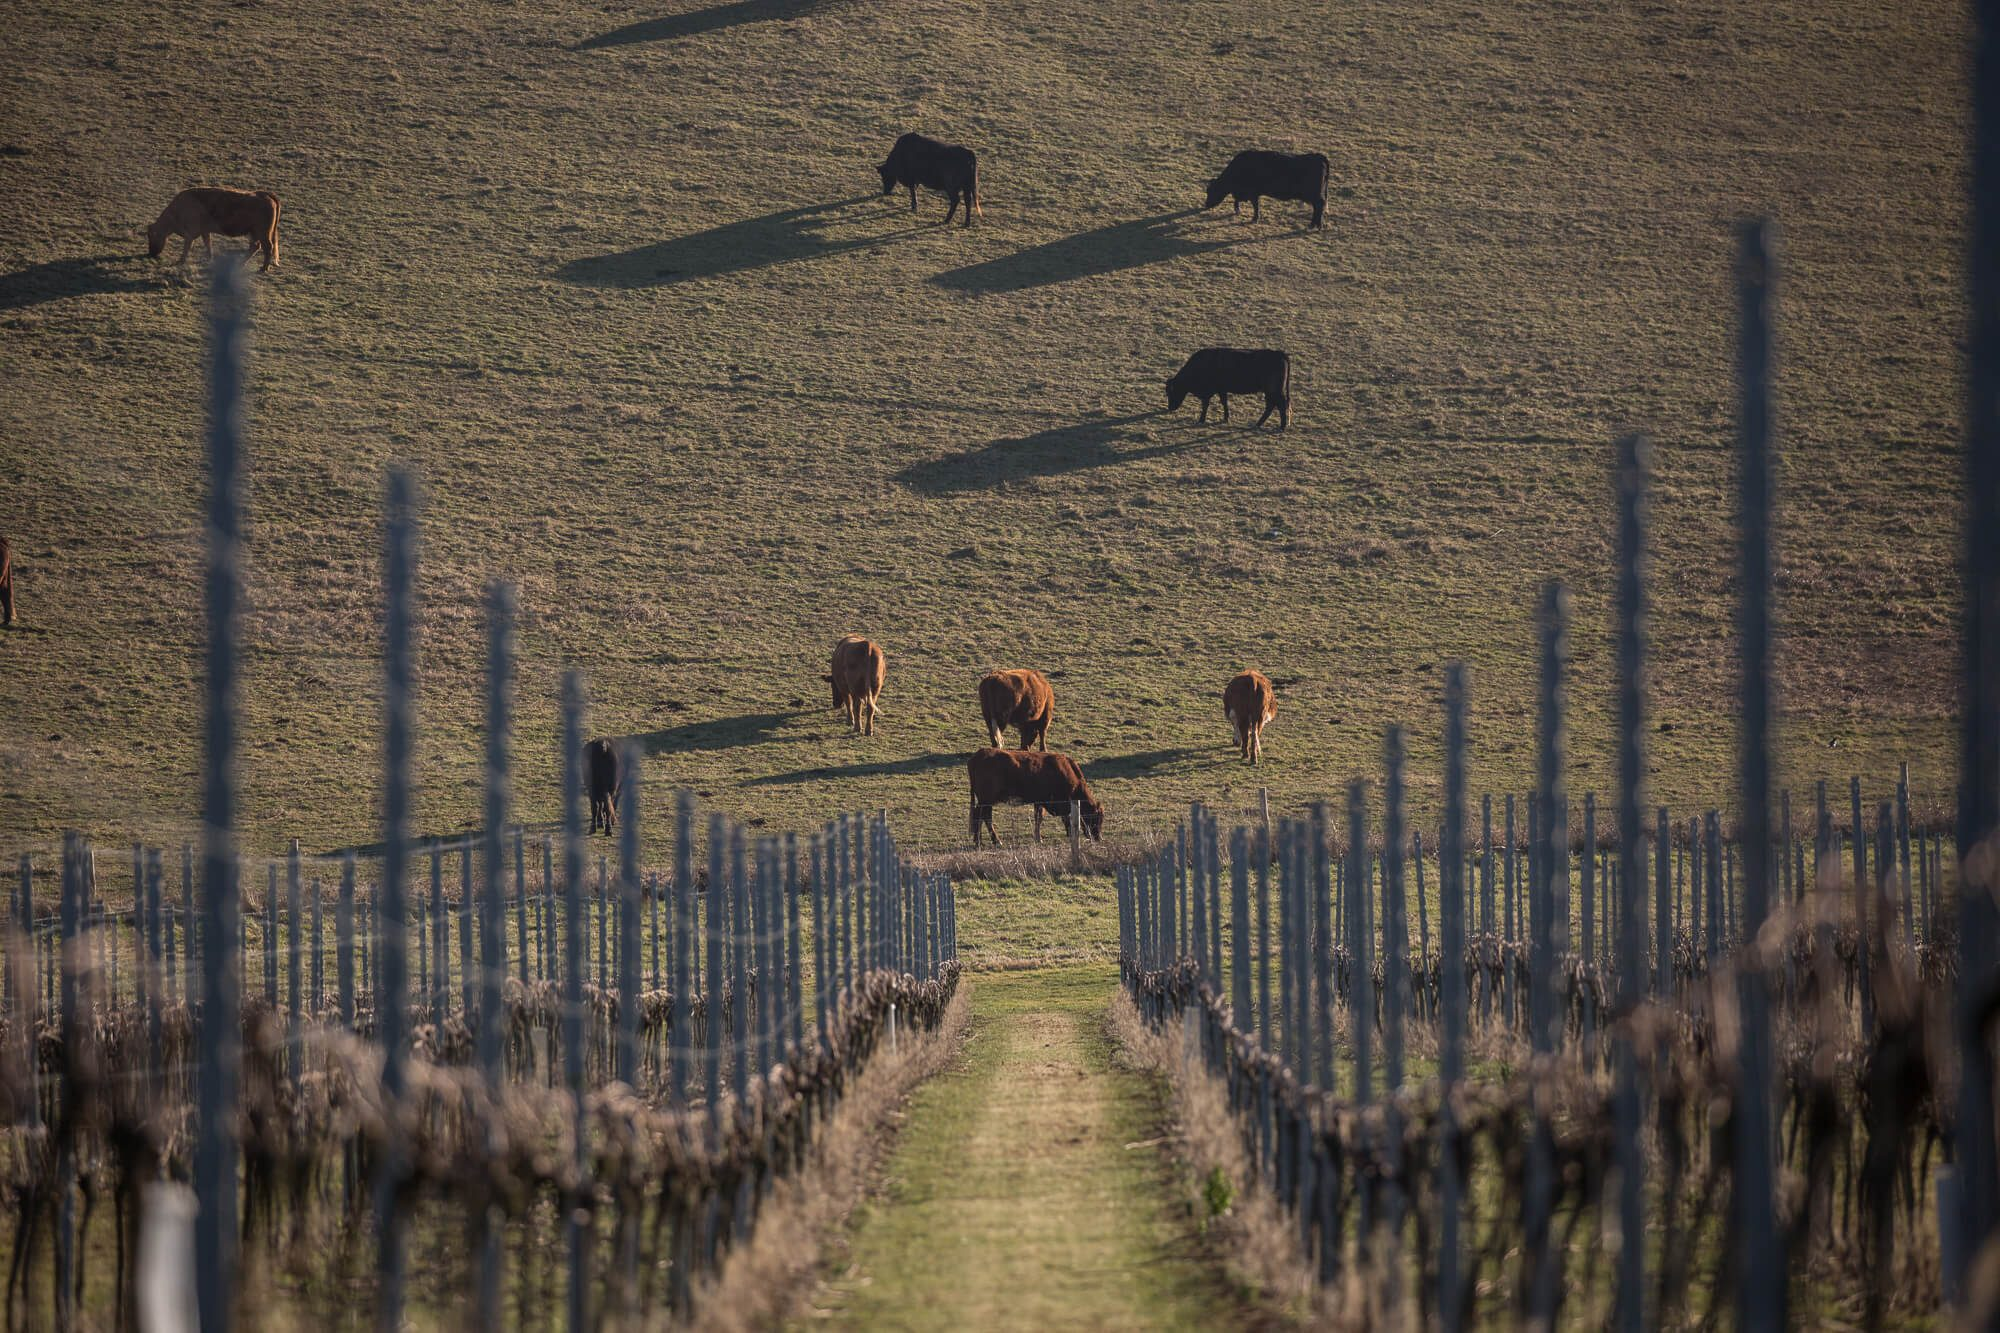 Cows on the Vineyard